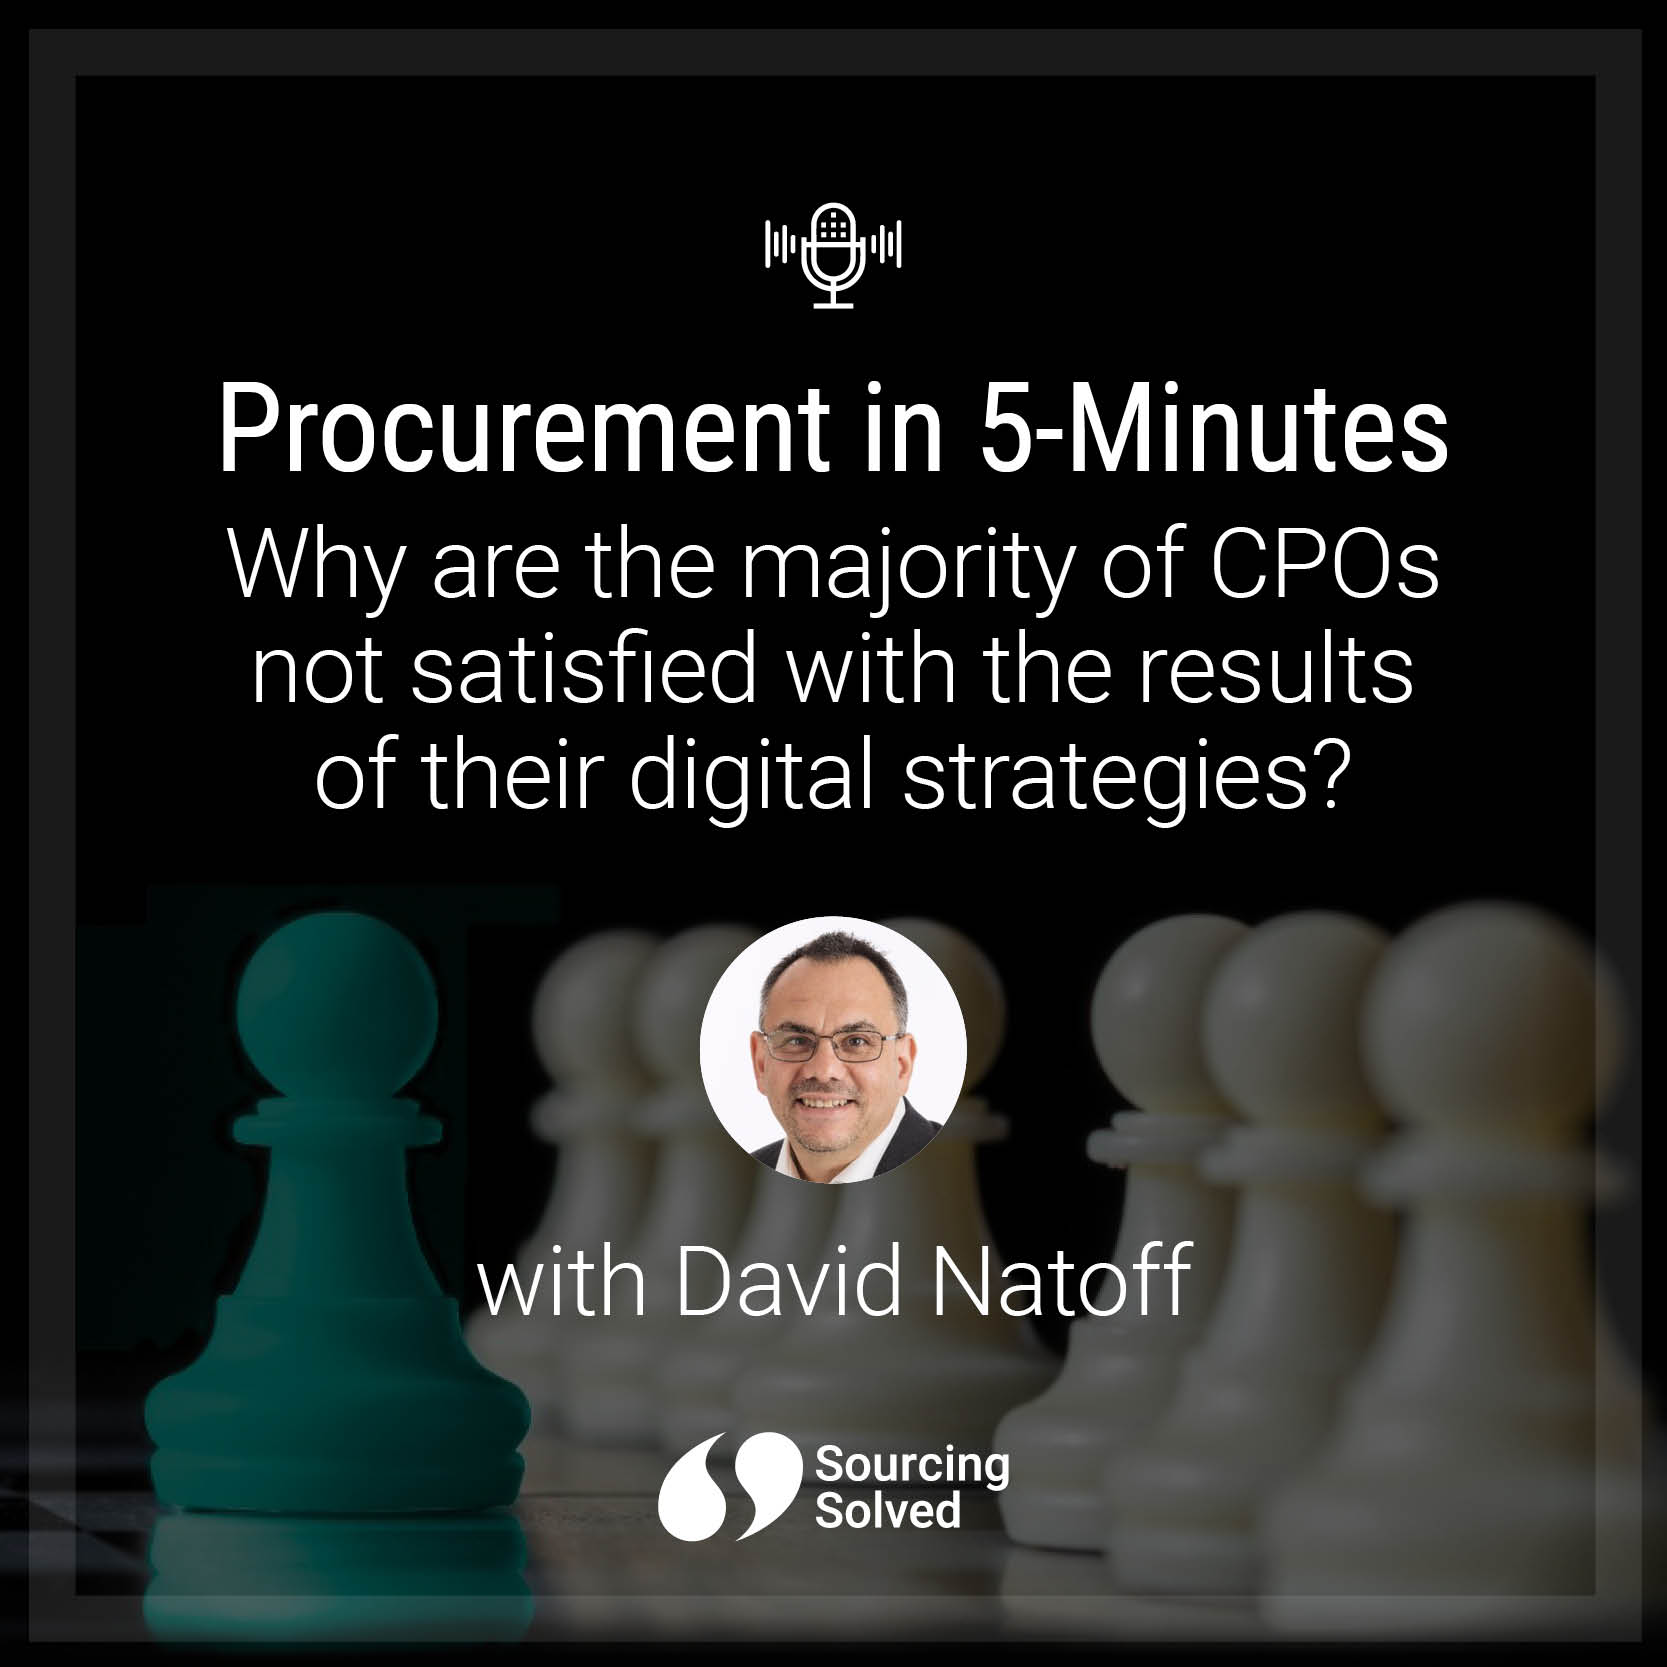 Procurement in 5-Minutes: Why are the majority of CPOs not satisfied with the results of their digital strategies?